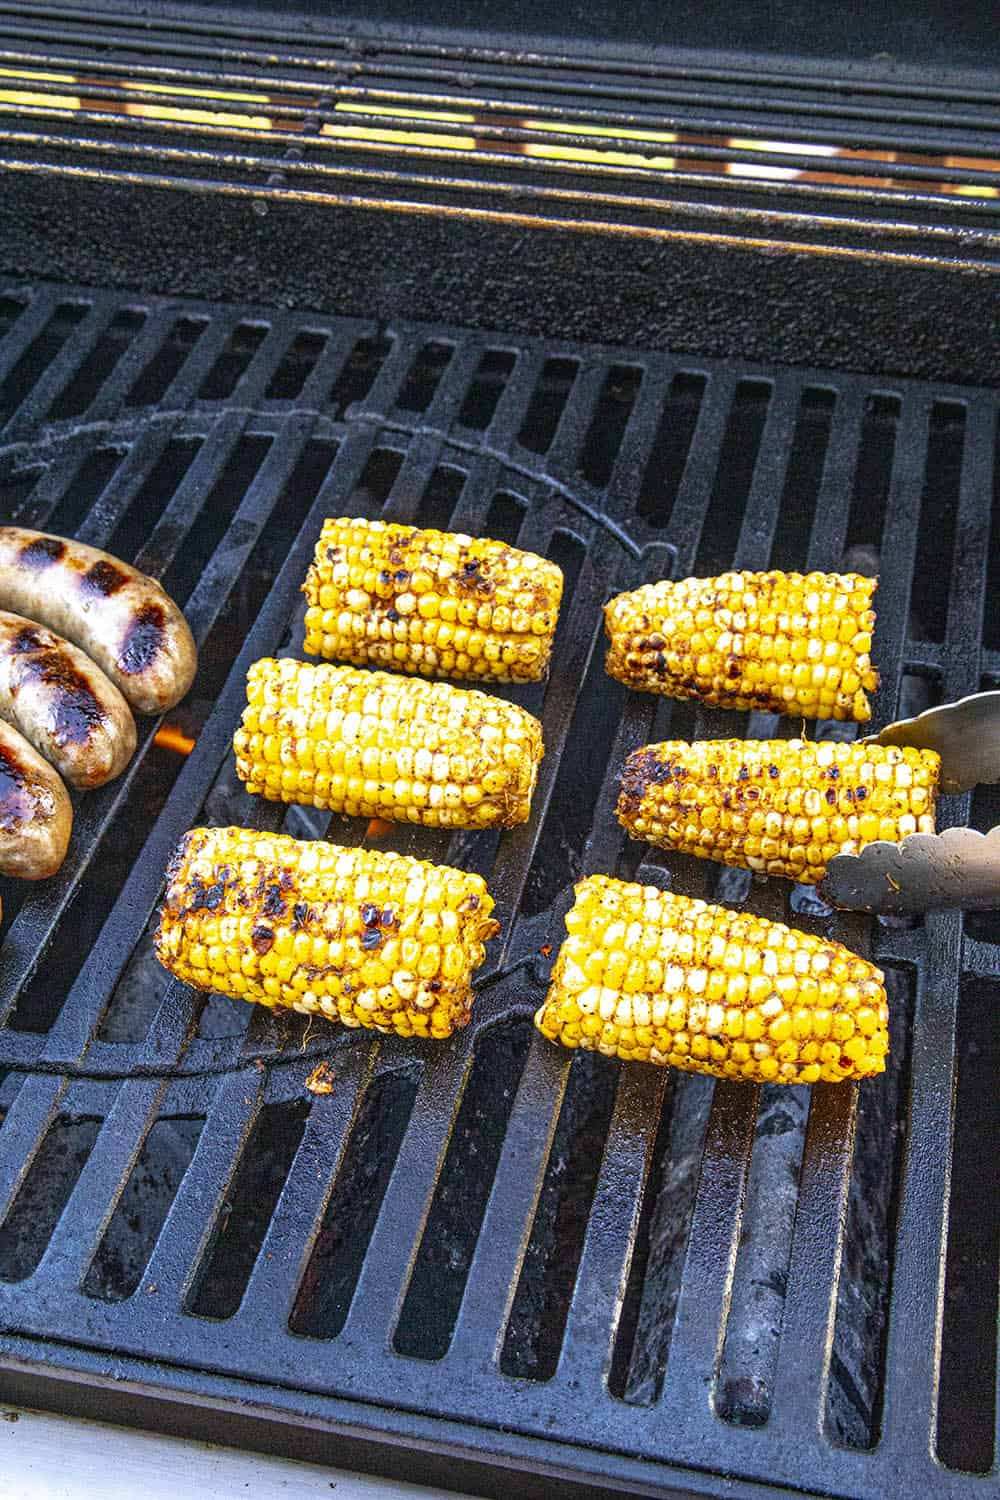 Jerk Rubbed Grilled Corn on the Cob on the grill